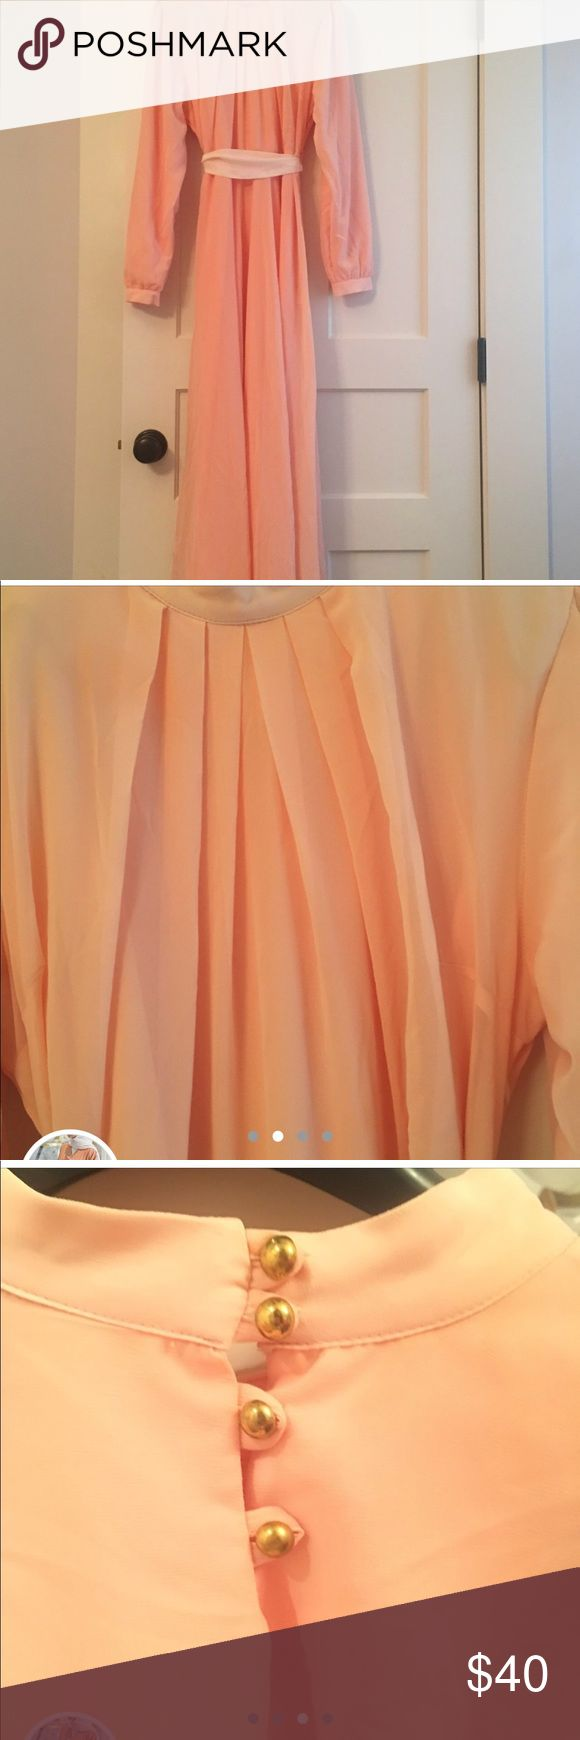 Full Length dress Full length long sleeve light pink Modanisa dress. Was worn only once on Eid and dry cleaned after. Perfect for Eid celebration, or any party or formal event. Was bought for 60, will sell for 30. Price is negotiable.   #pink #long #flowy #dress #white #gold #buttons #party #eid #ramadan #modest #modanisa #hijab #hijabi #islam #islamic Dresses